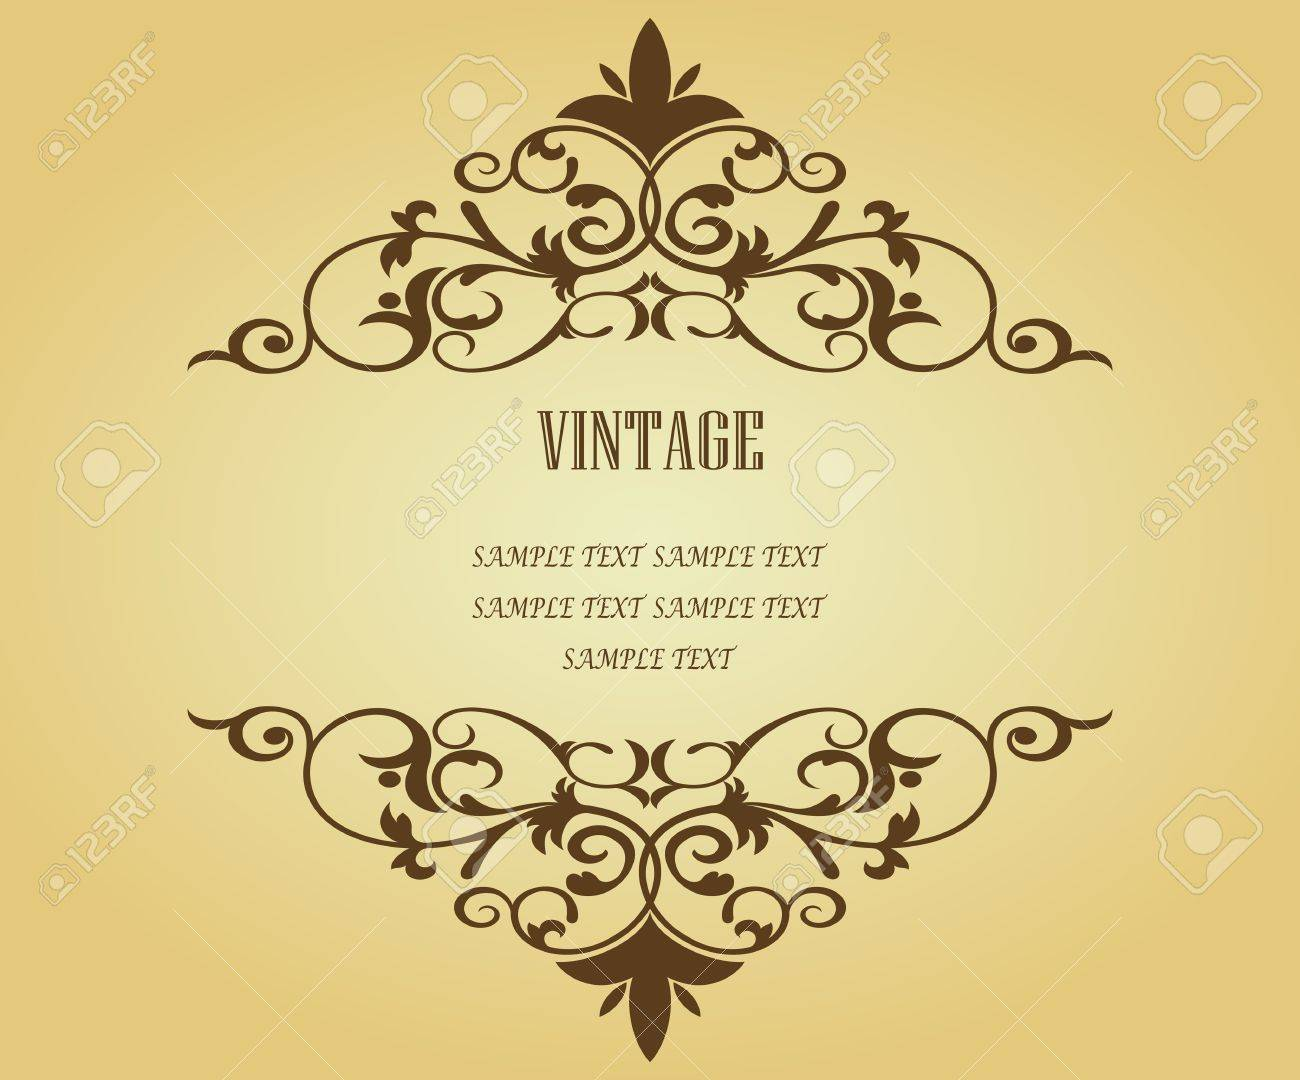 Vintage frame in victorian style for design as a background Stock Vector - 7248427